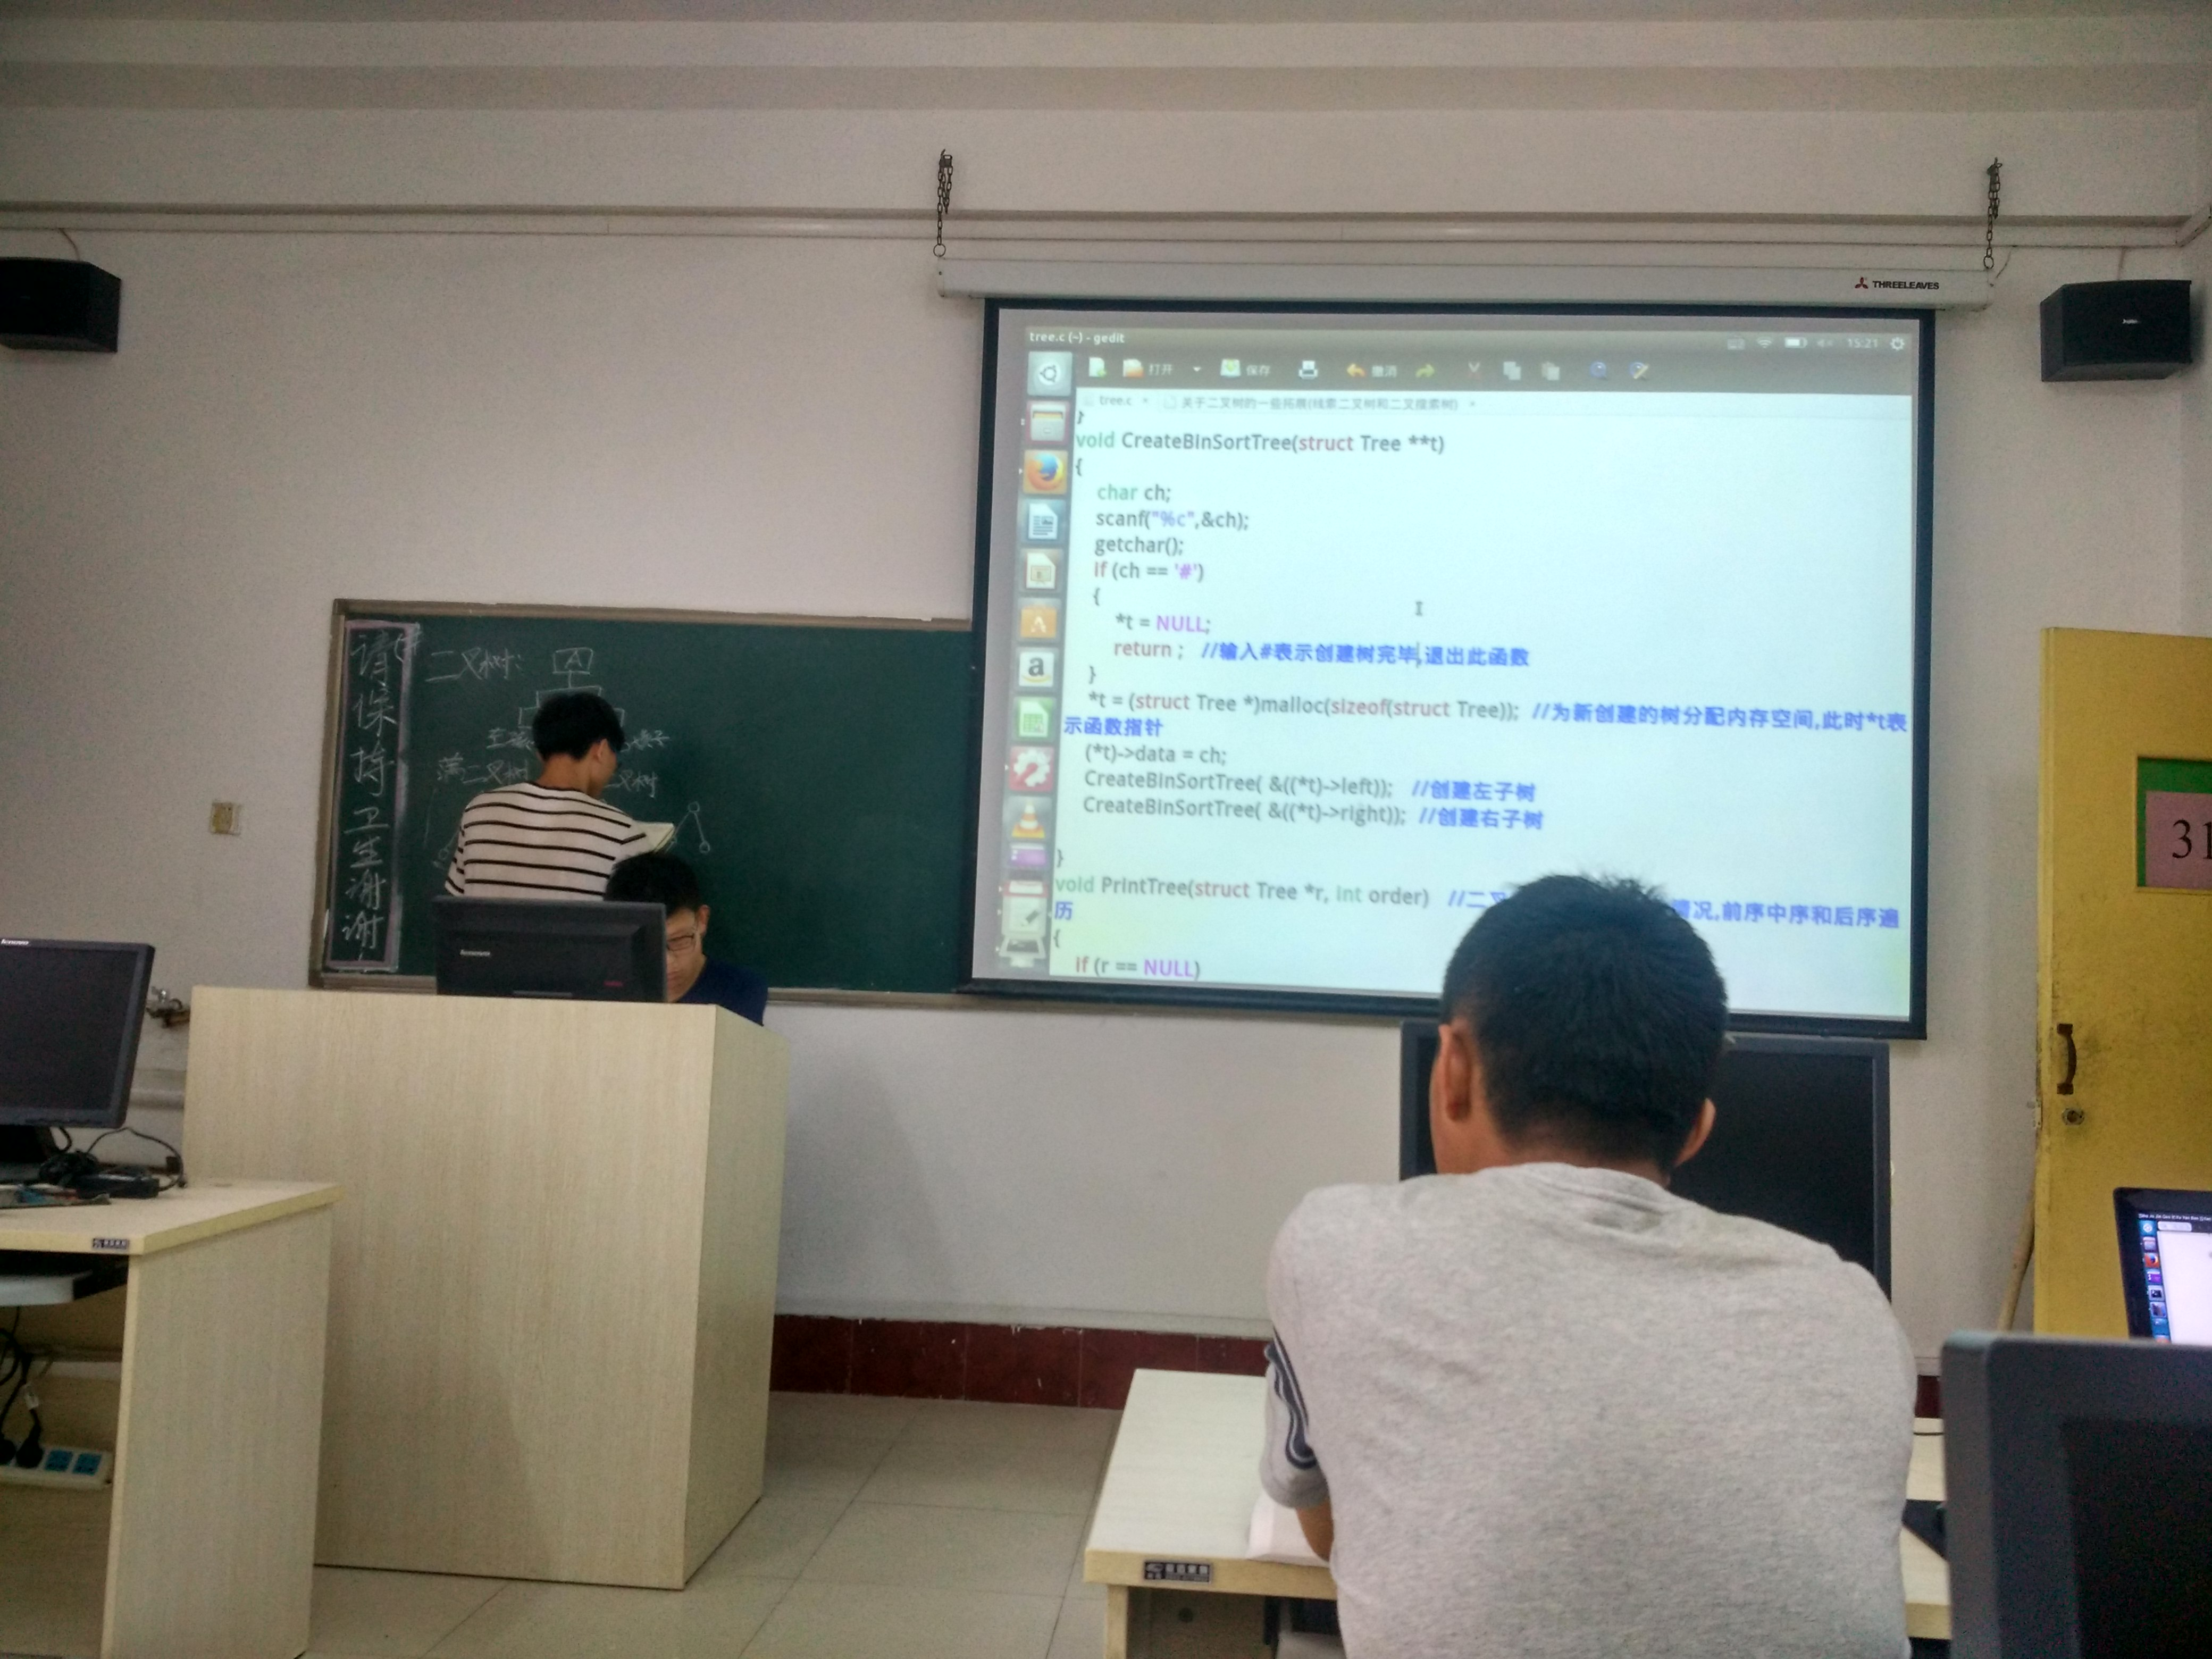 image: http://softlab.sdut.edu.cn/blog/wp-content/uploads/2016/05/0_home_subaochen_git_blog_imgs_softlab-lecture_IMG_20160512_152200_HDR.jpg